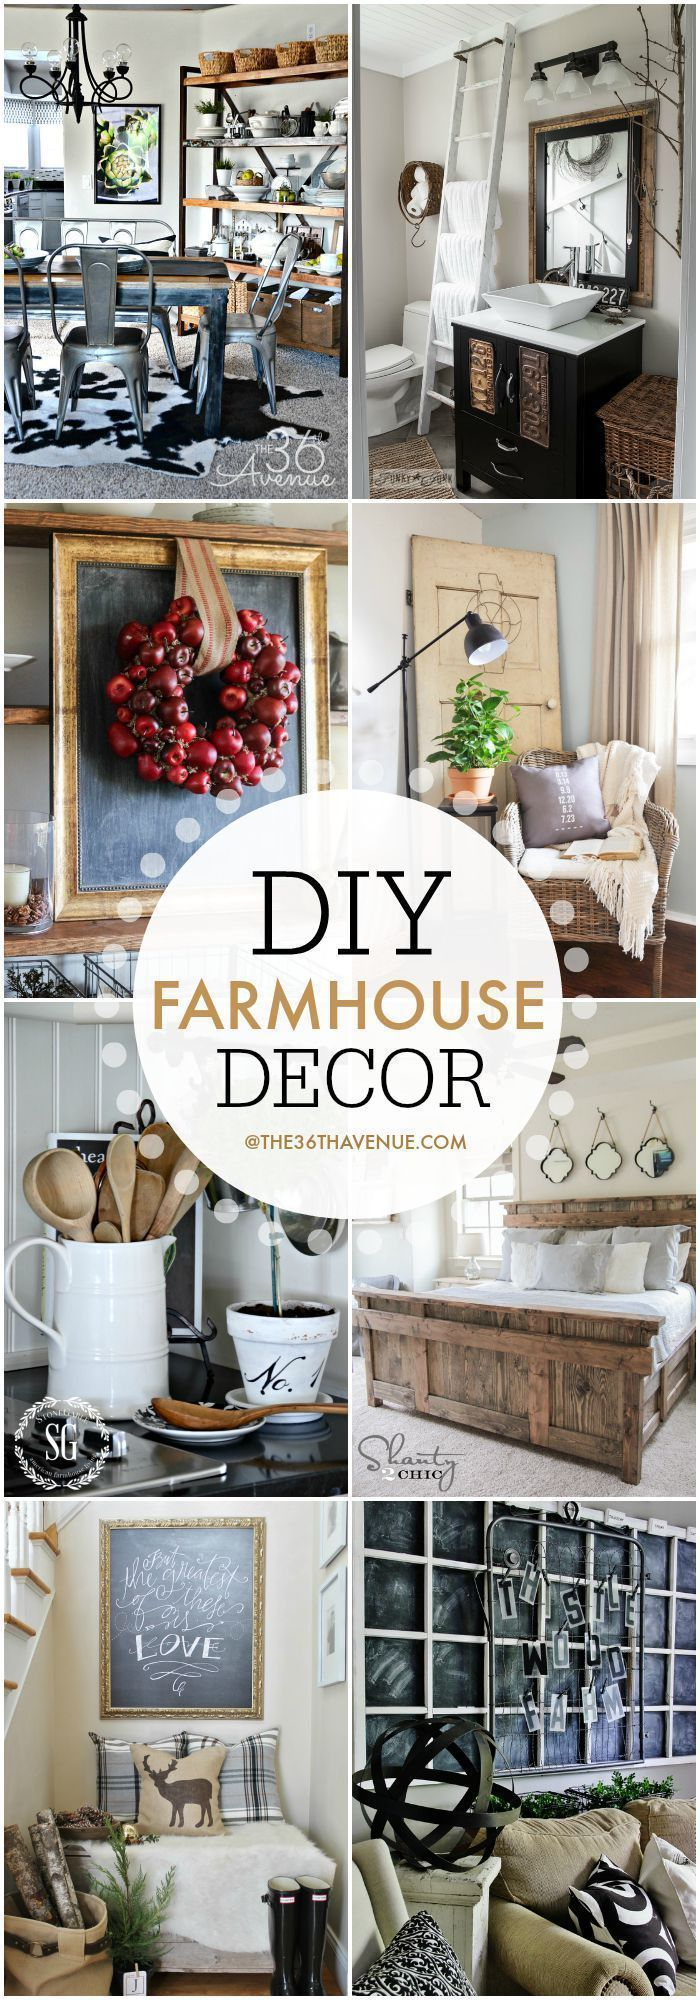 Home Decor - DIY Farmhouse Decor Ideas - Super cute ways to decorate your home!